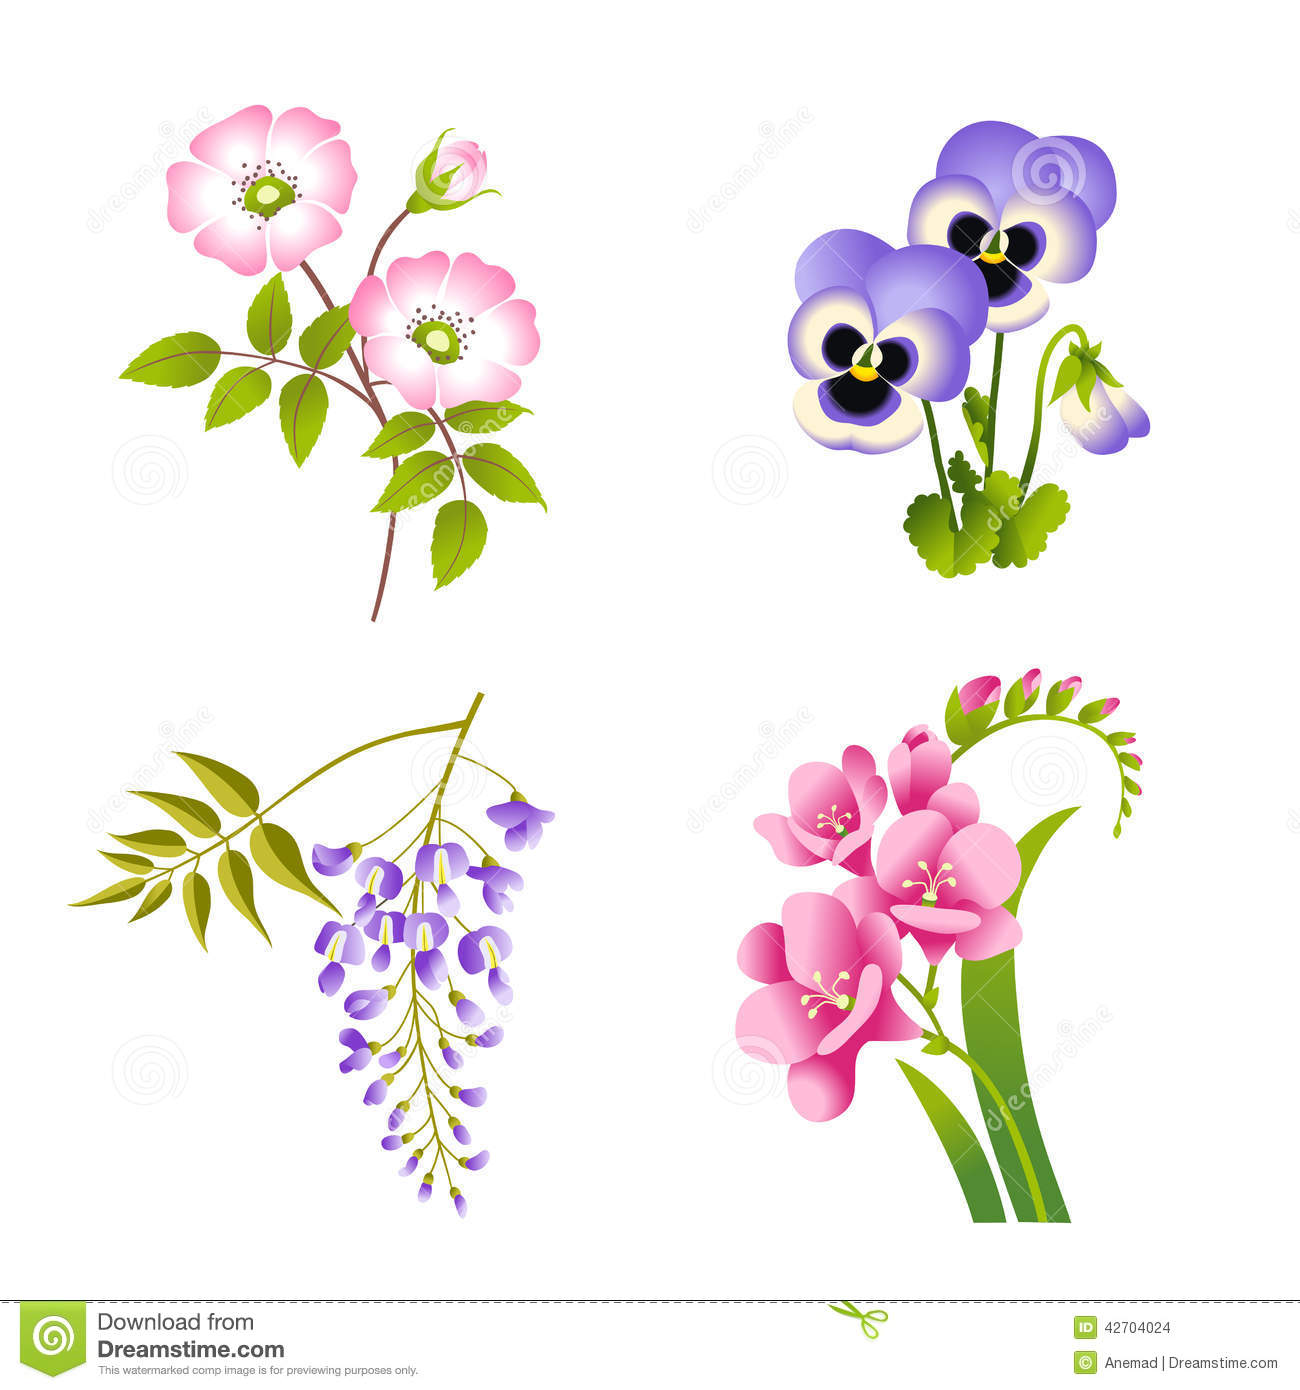 Roses, Pansy, Wisteria And Fuchsia Flowers Stock Vector.